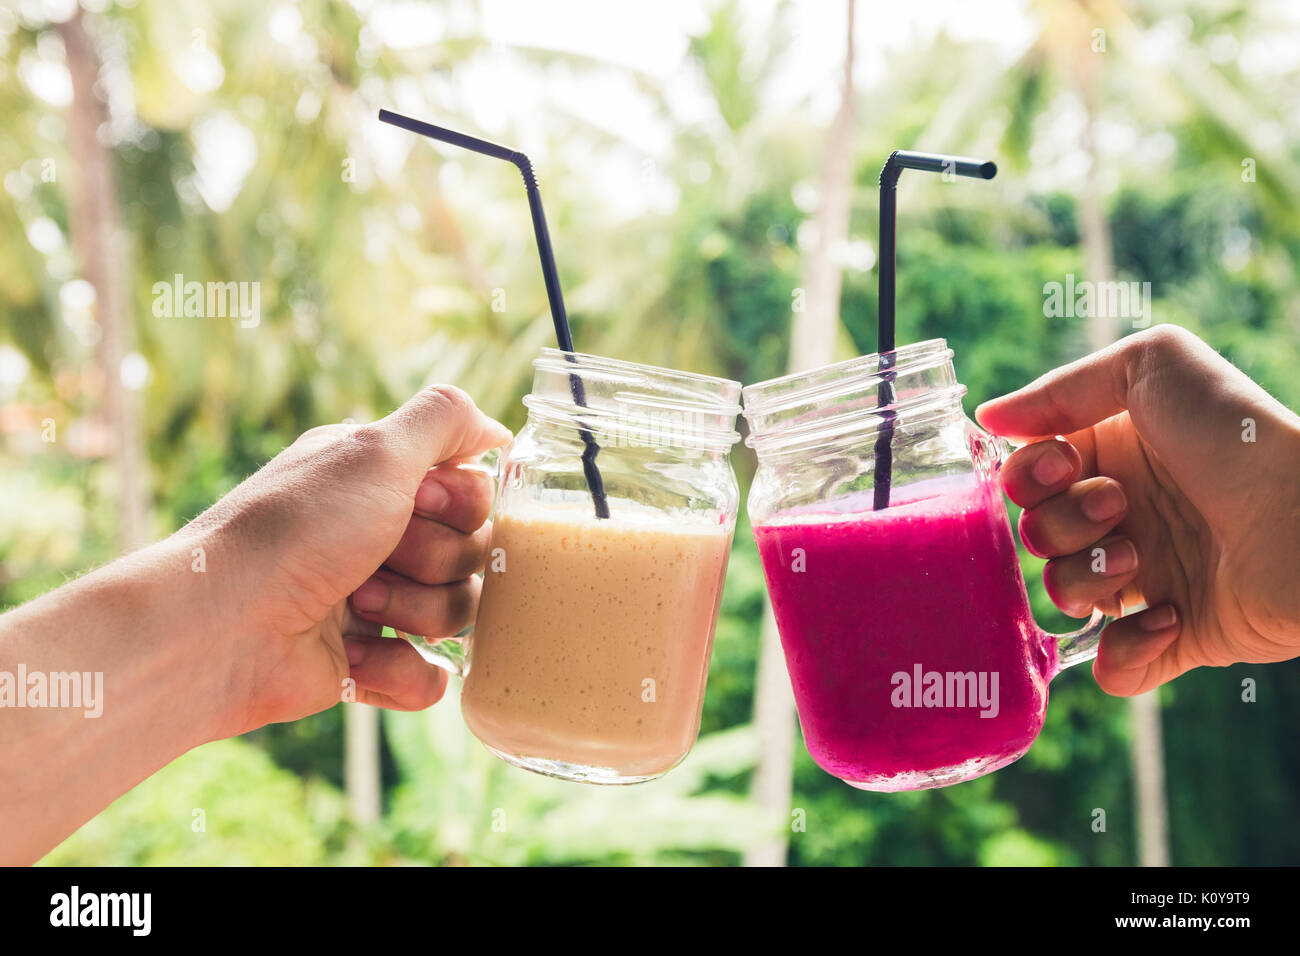 Two colorful fruit shakes in hands. Summer and tropical mood. Cold blended drinks, banana and dragon fruit smoothie. Clink glasses by couple hands - Stock Image